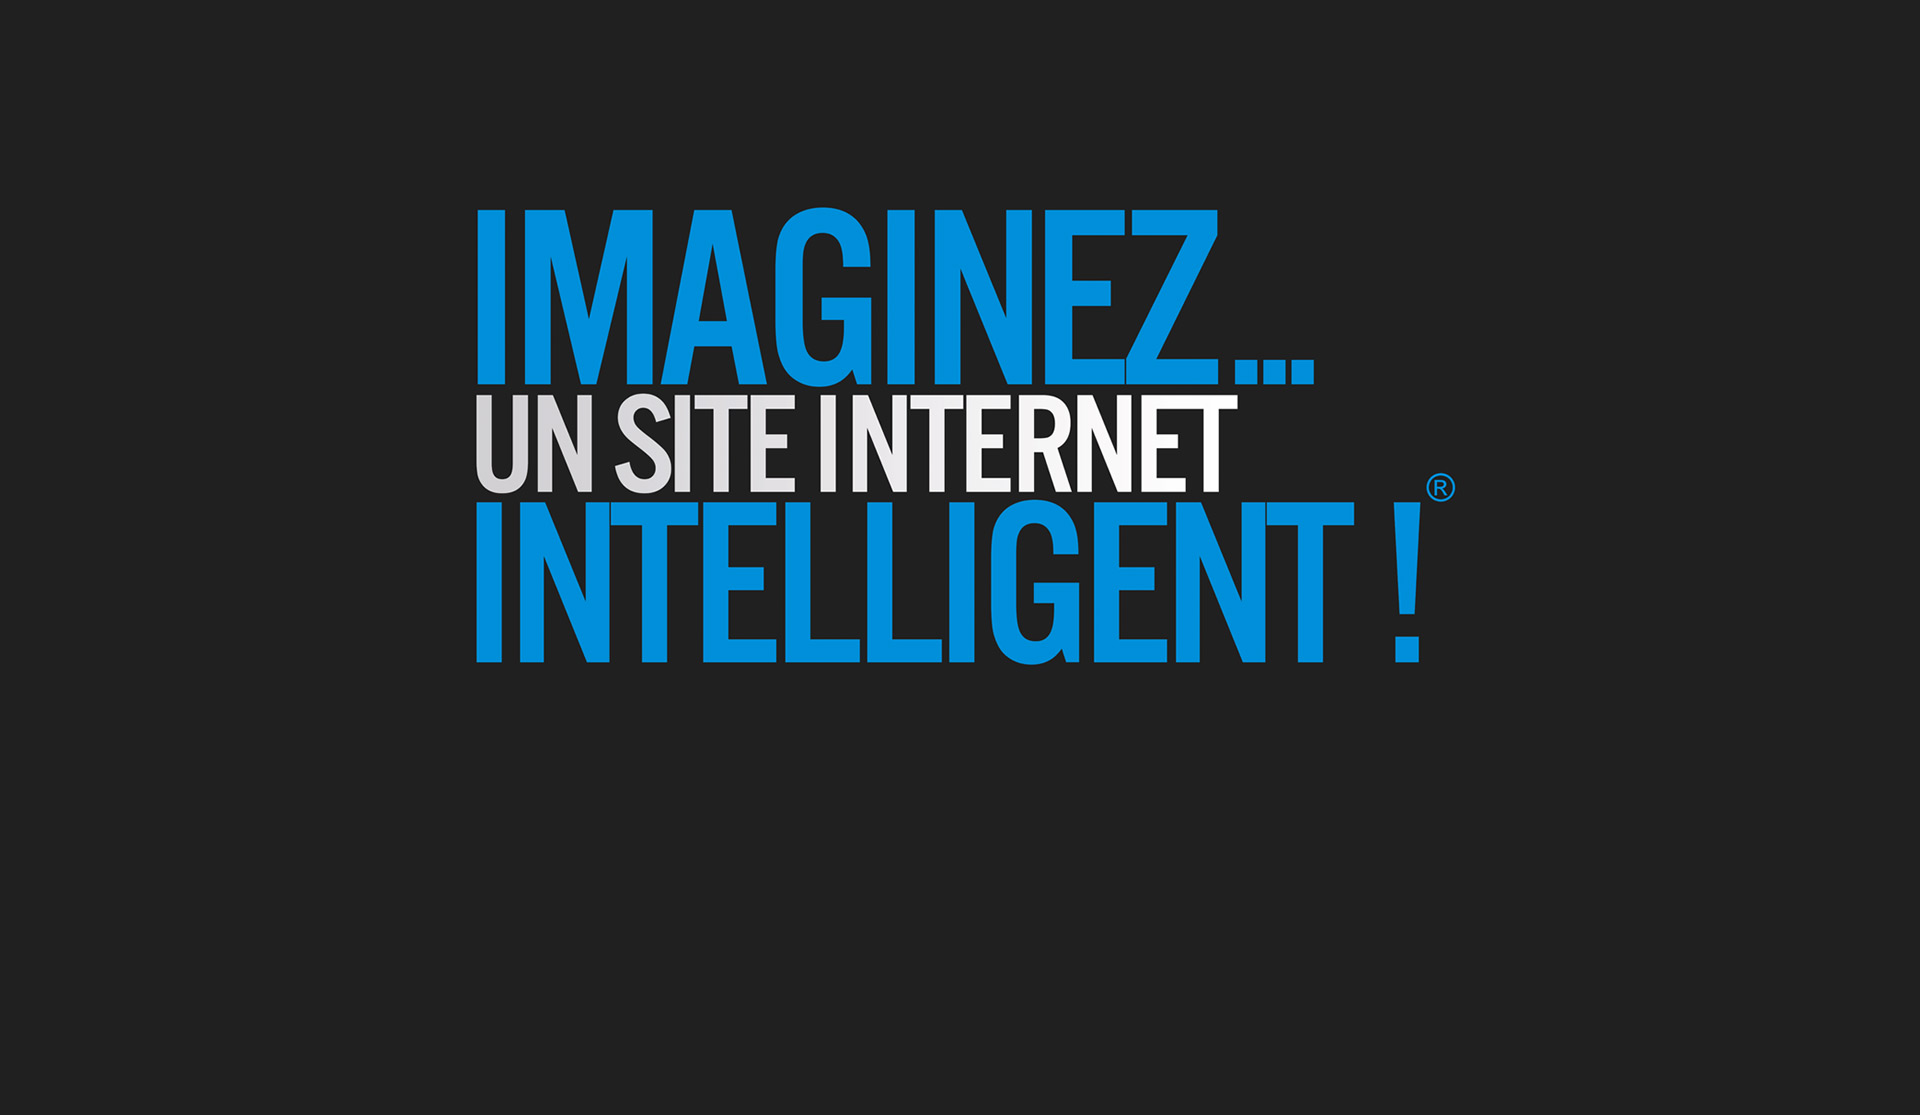 Imaginez un site internet intelligent !